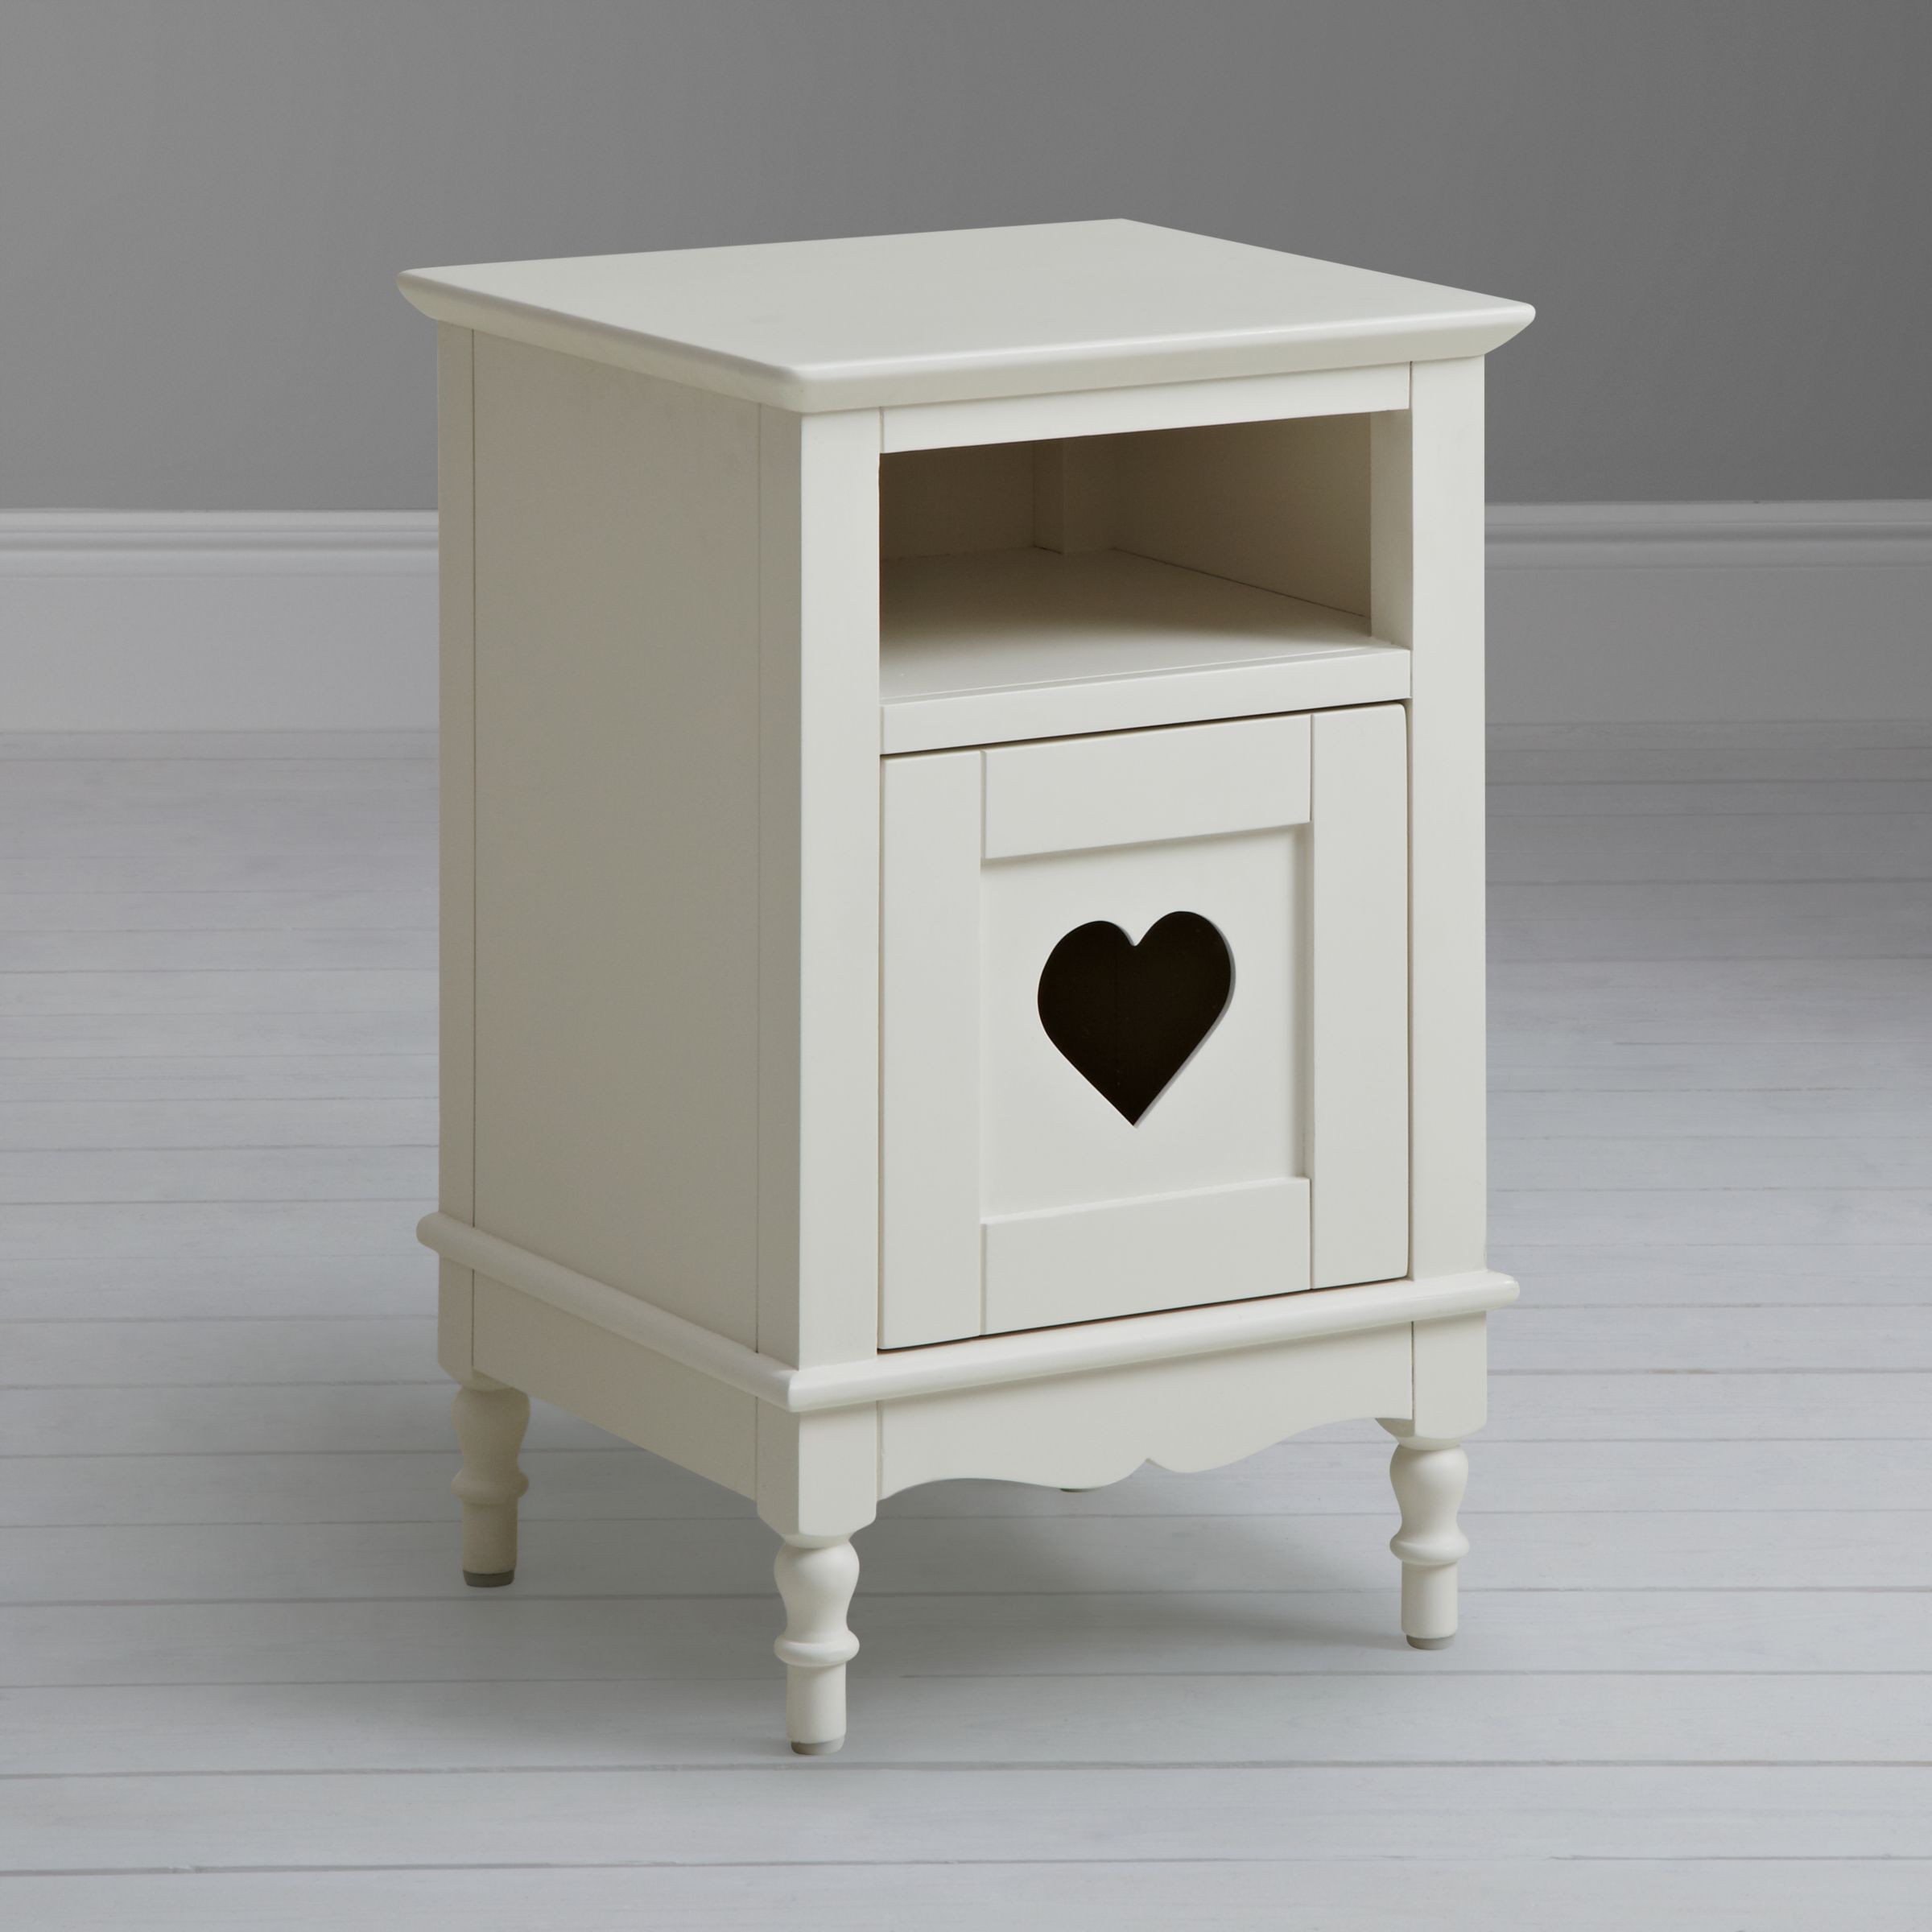 Childrens Drawers Small Grey Heart Bedside Table 2 Drawer Nightstand Kids Childrens Home Furniture Home Furniture Diy 5050 Pk